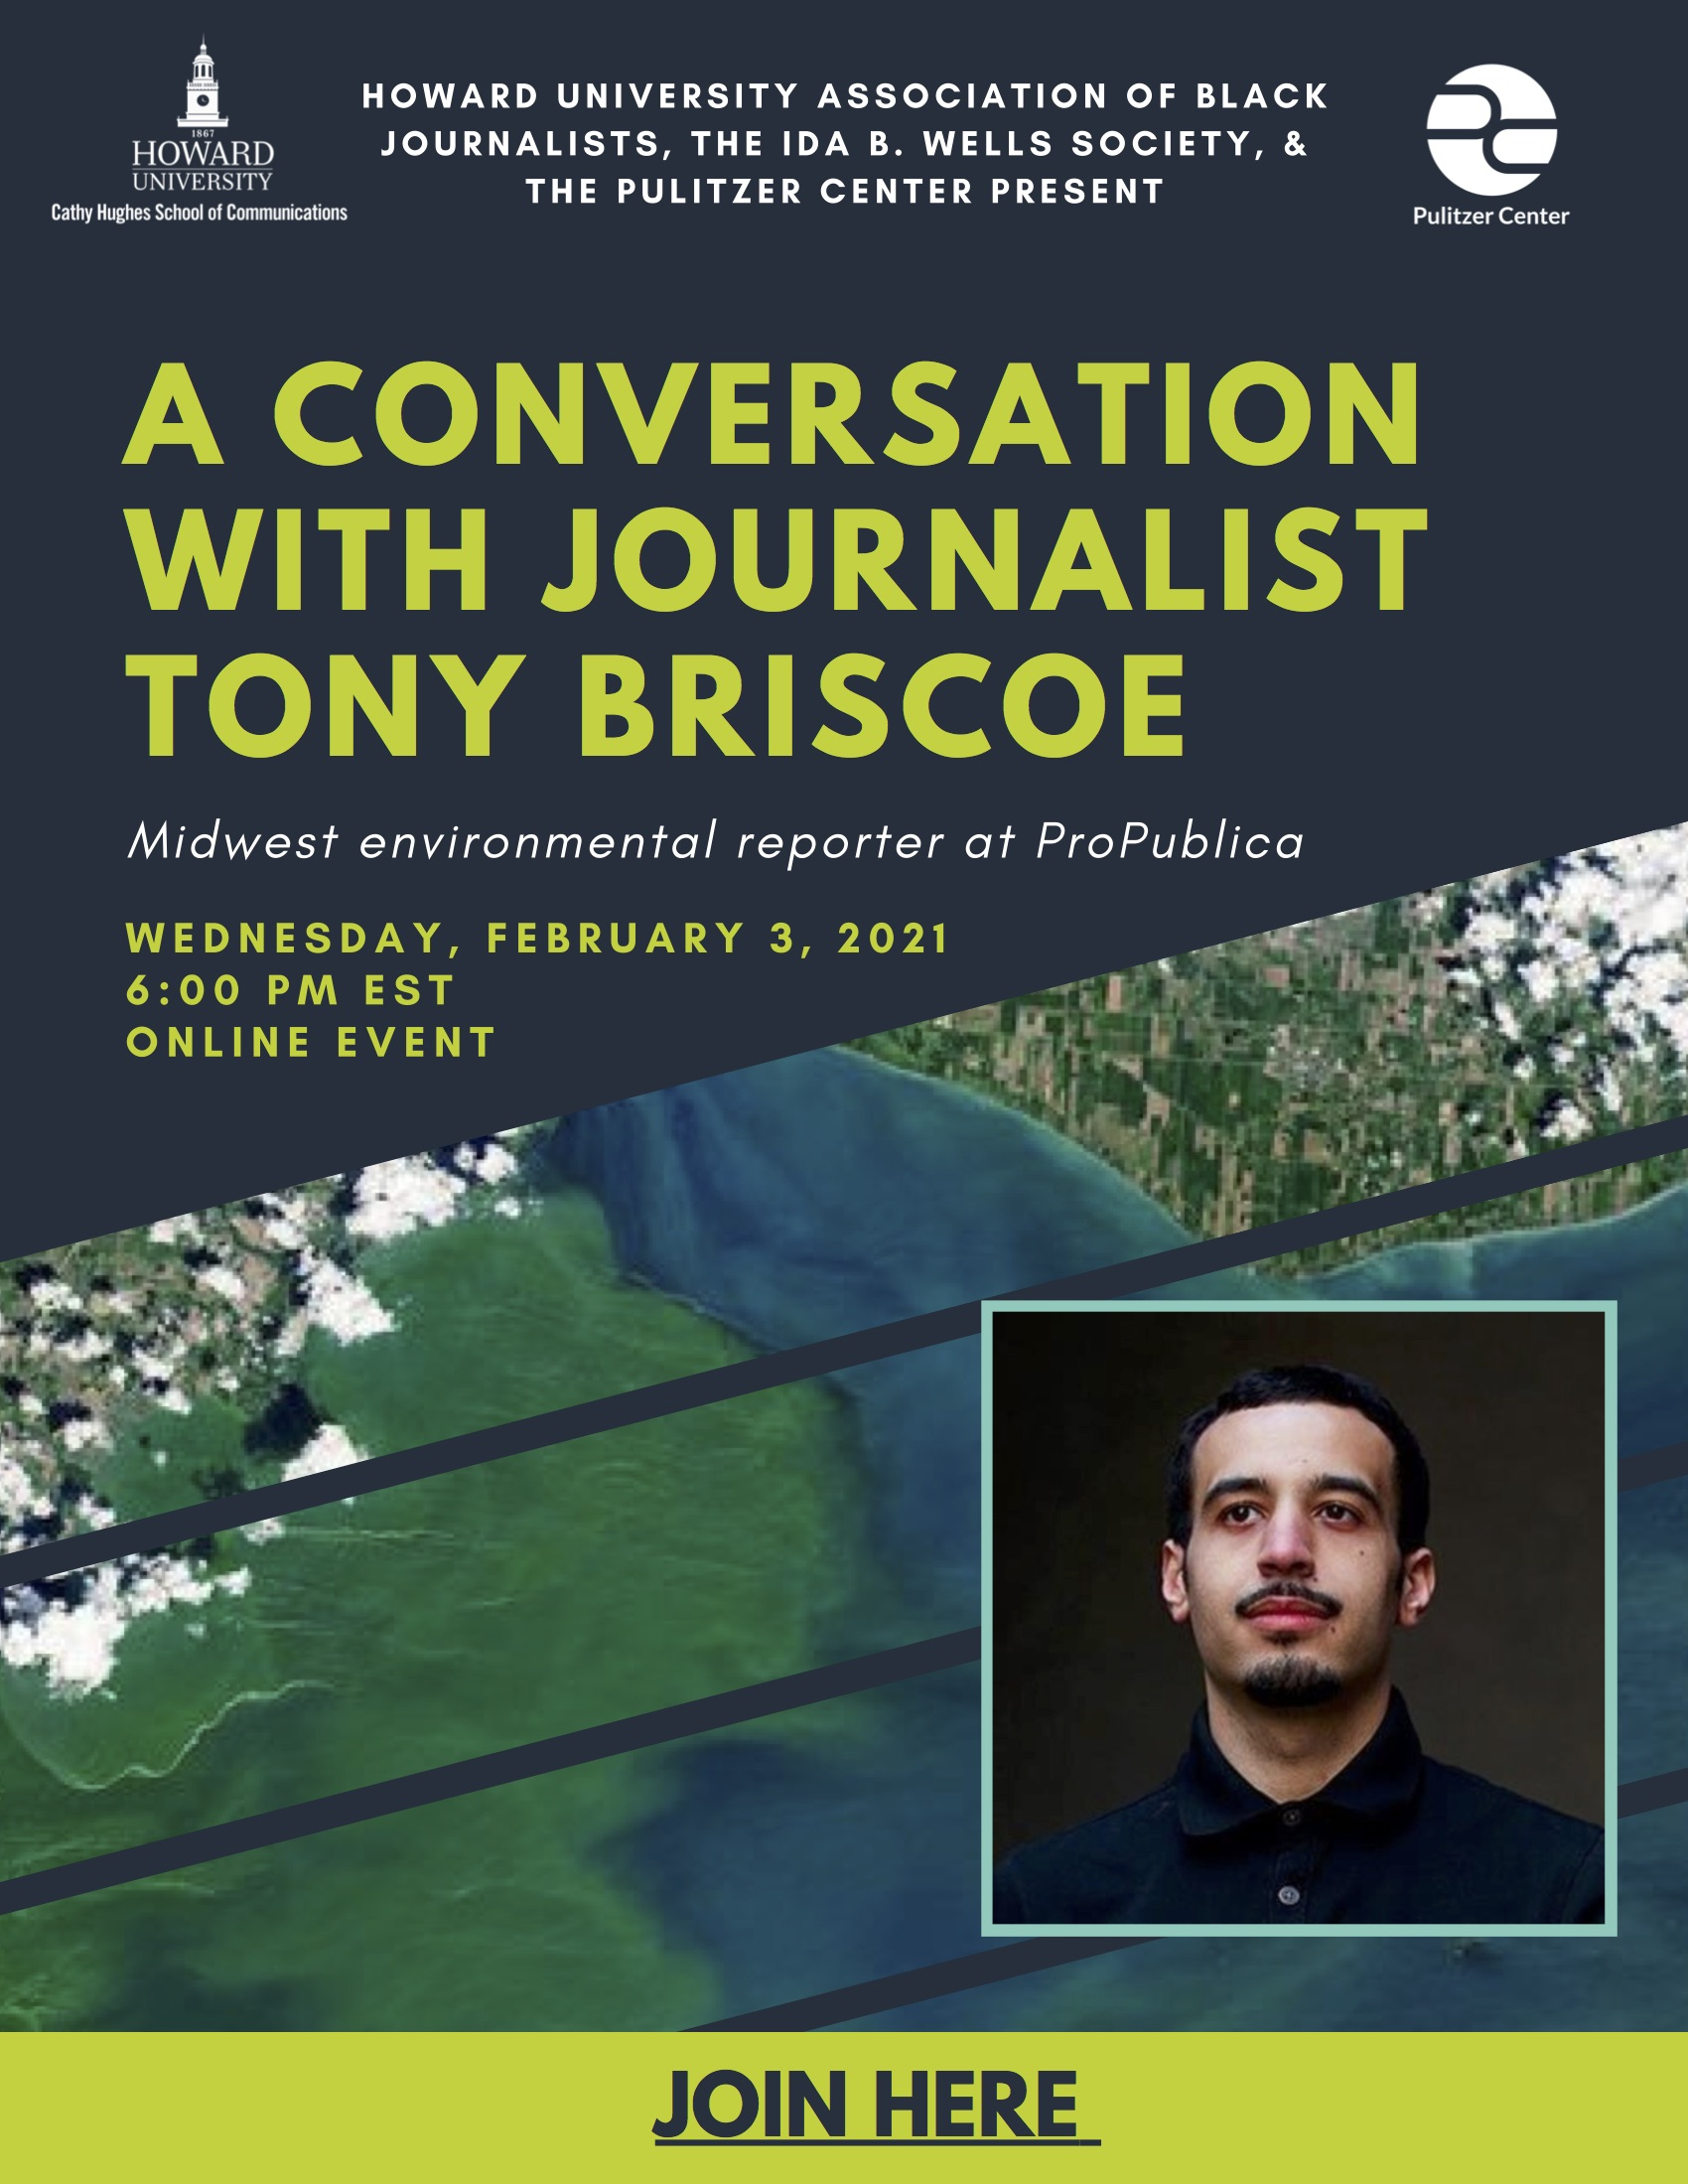 A Conversation with Journalist Tony Briscoe